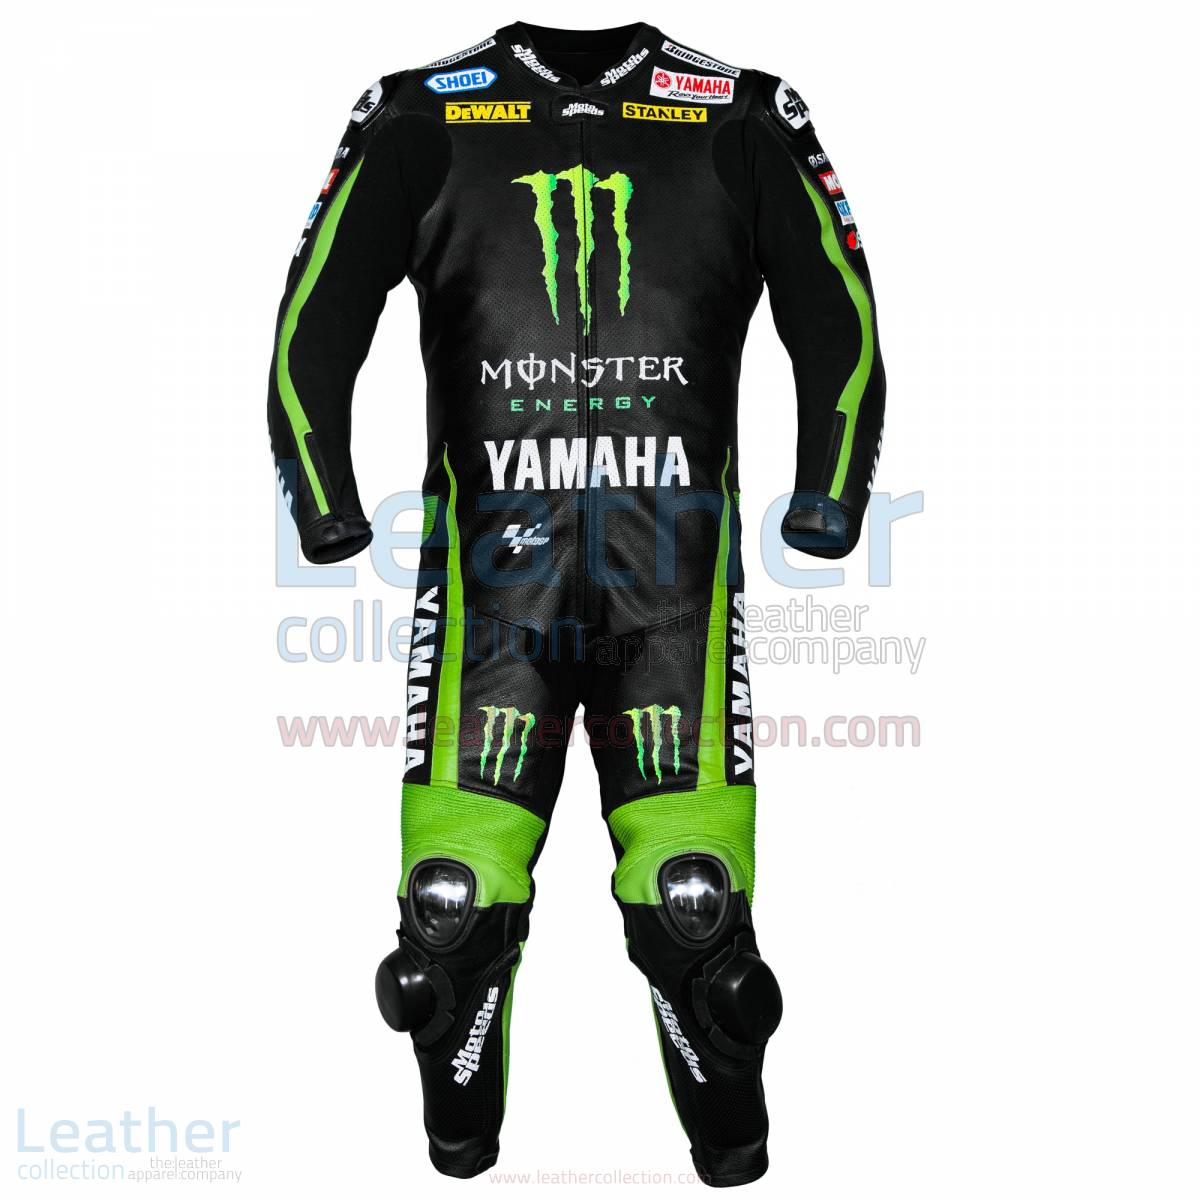 monster energy leathers